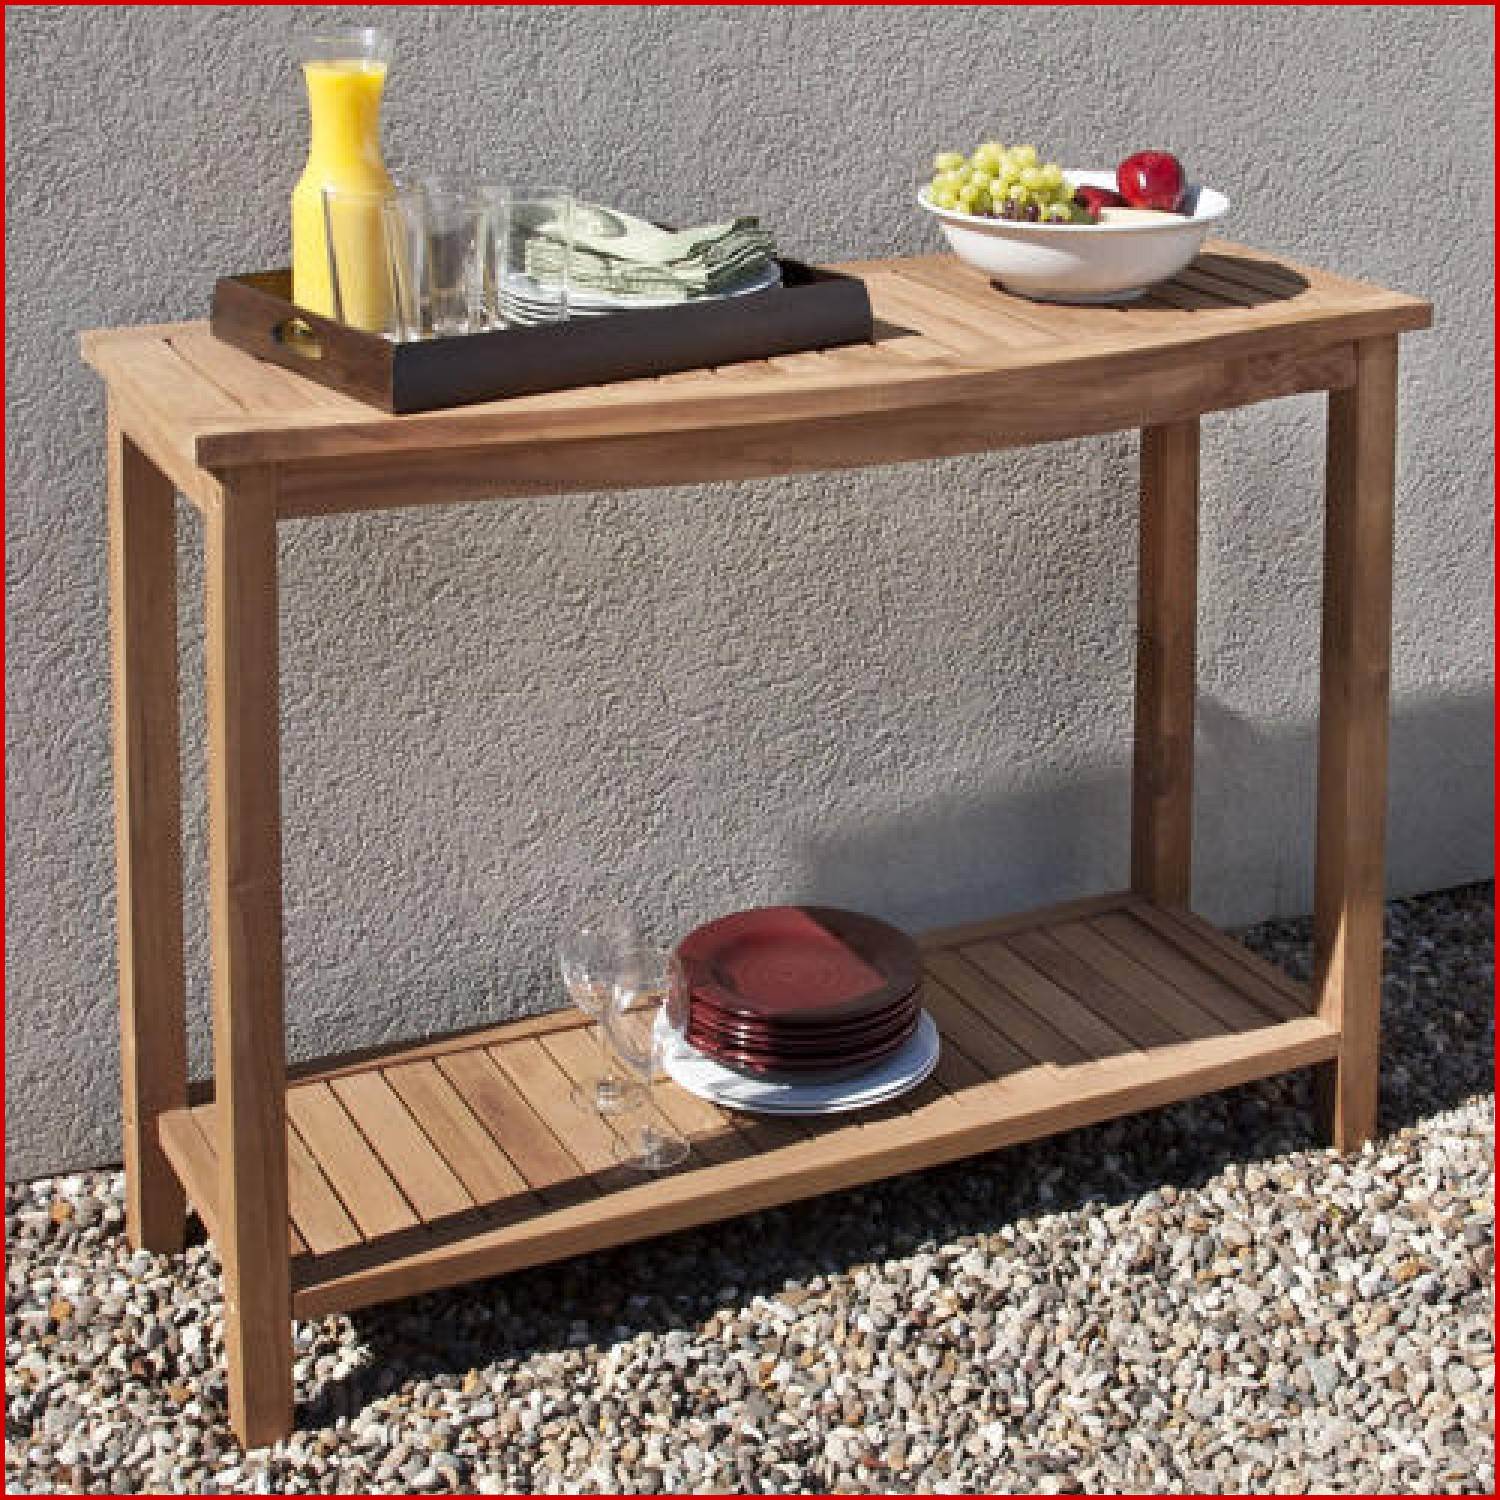 outdoor sideboard viewing tables showing table large kitchen clocks inch round tablecloth pair white bedside acrylic top coffee small deck furniture covers wall baby changing pad